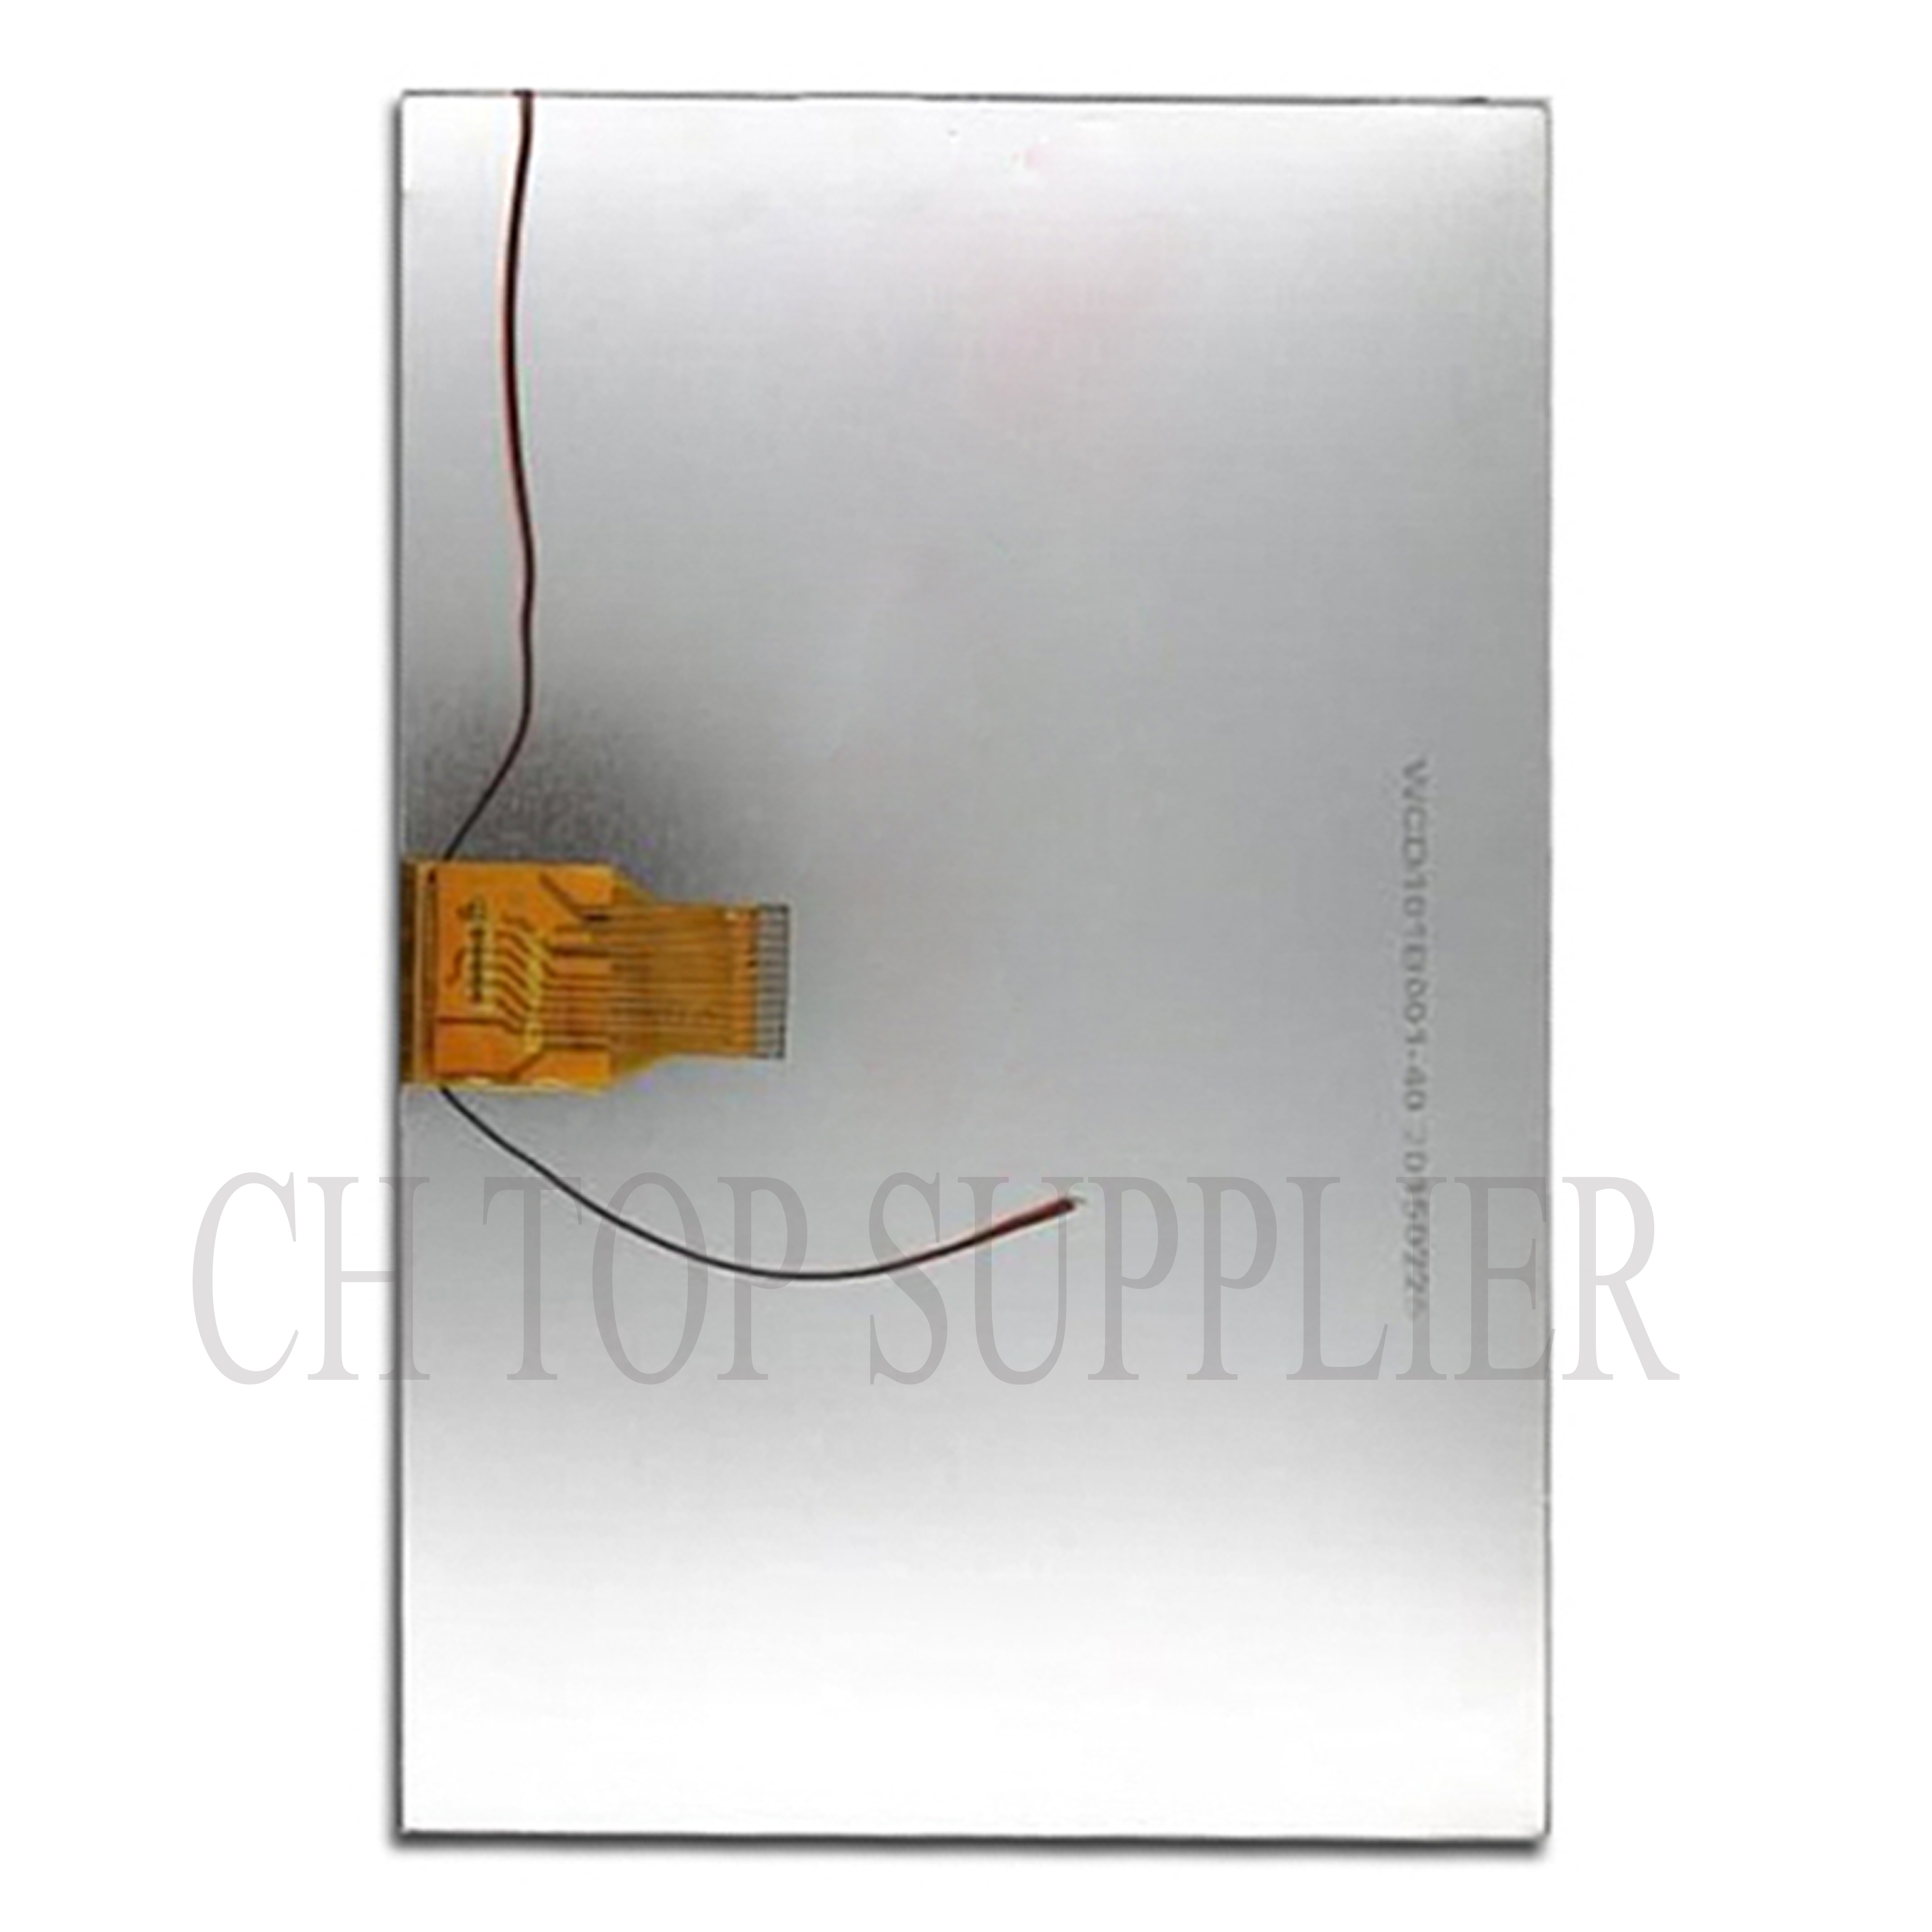 Original 10.1 inch LCD screen FPC90042 for tablet pc free shipping original 10 1inch lcd screen vvx10t022n00 for tablet pc free shipping